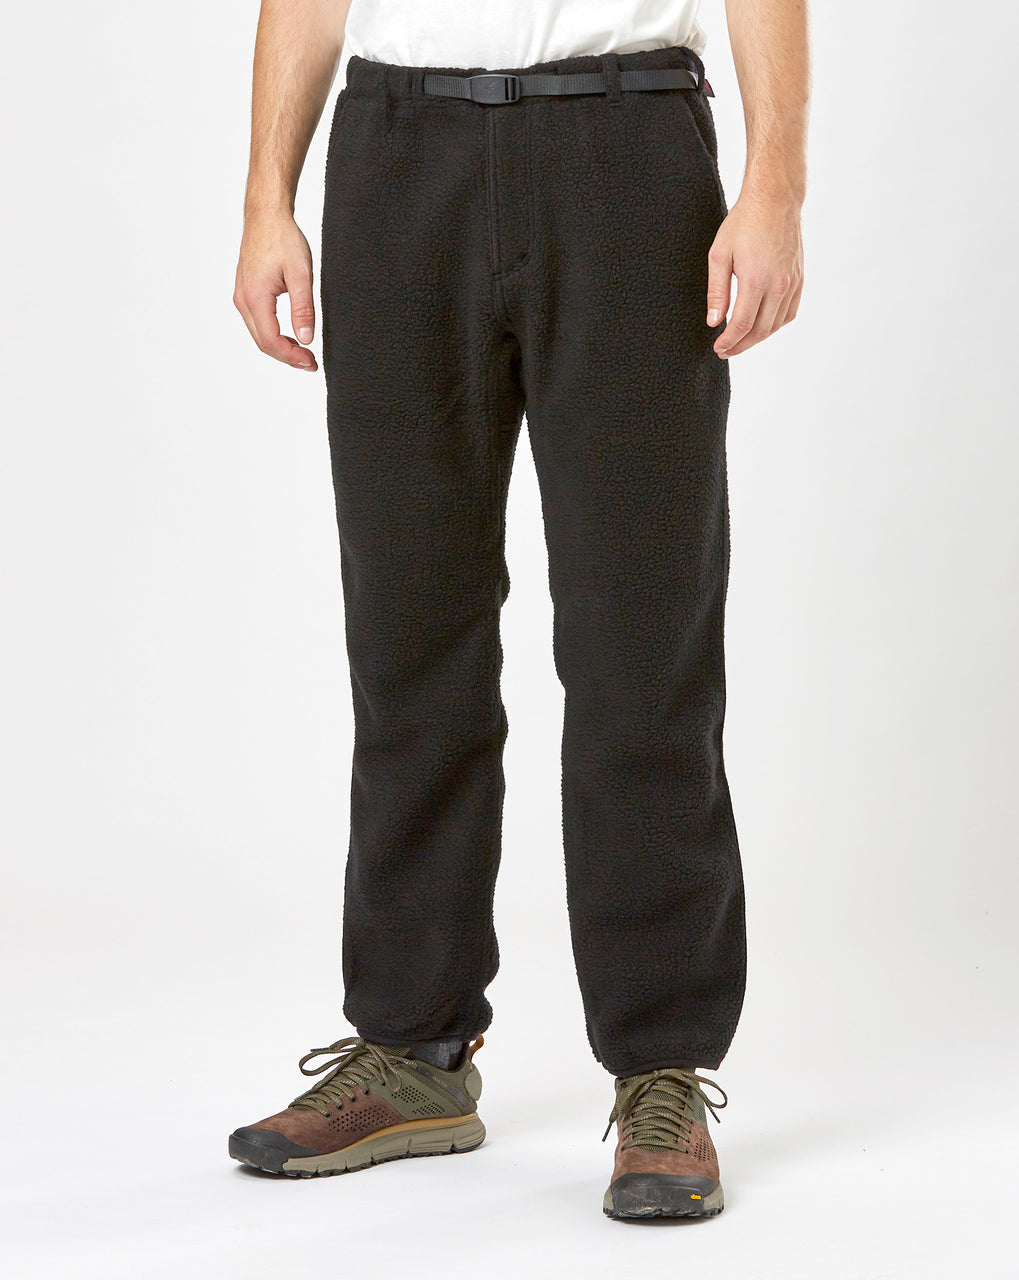 Gramicci Boa Fleece Pants (Black)